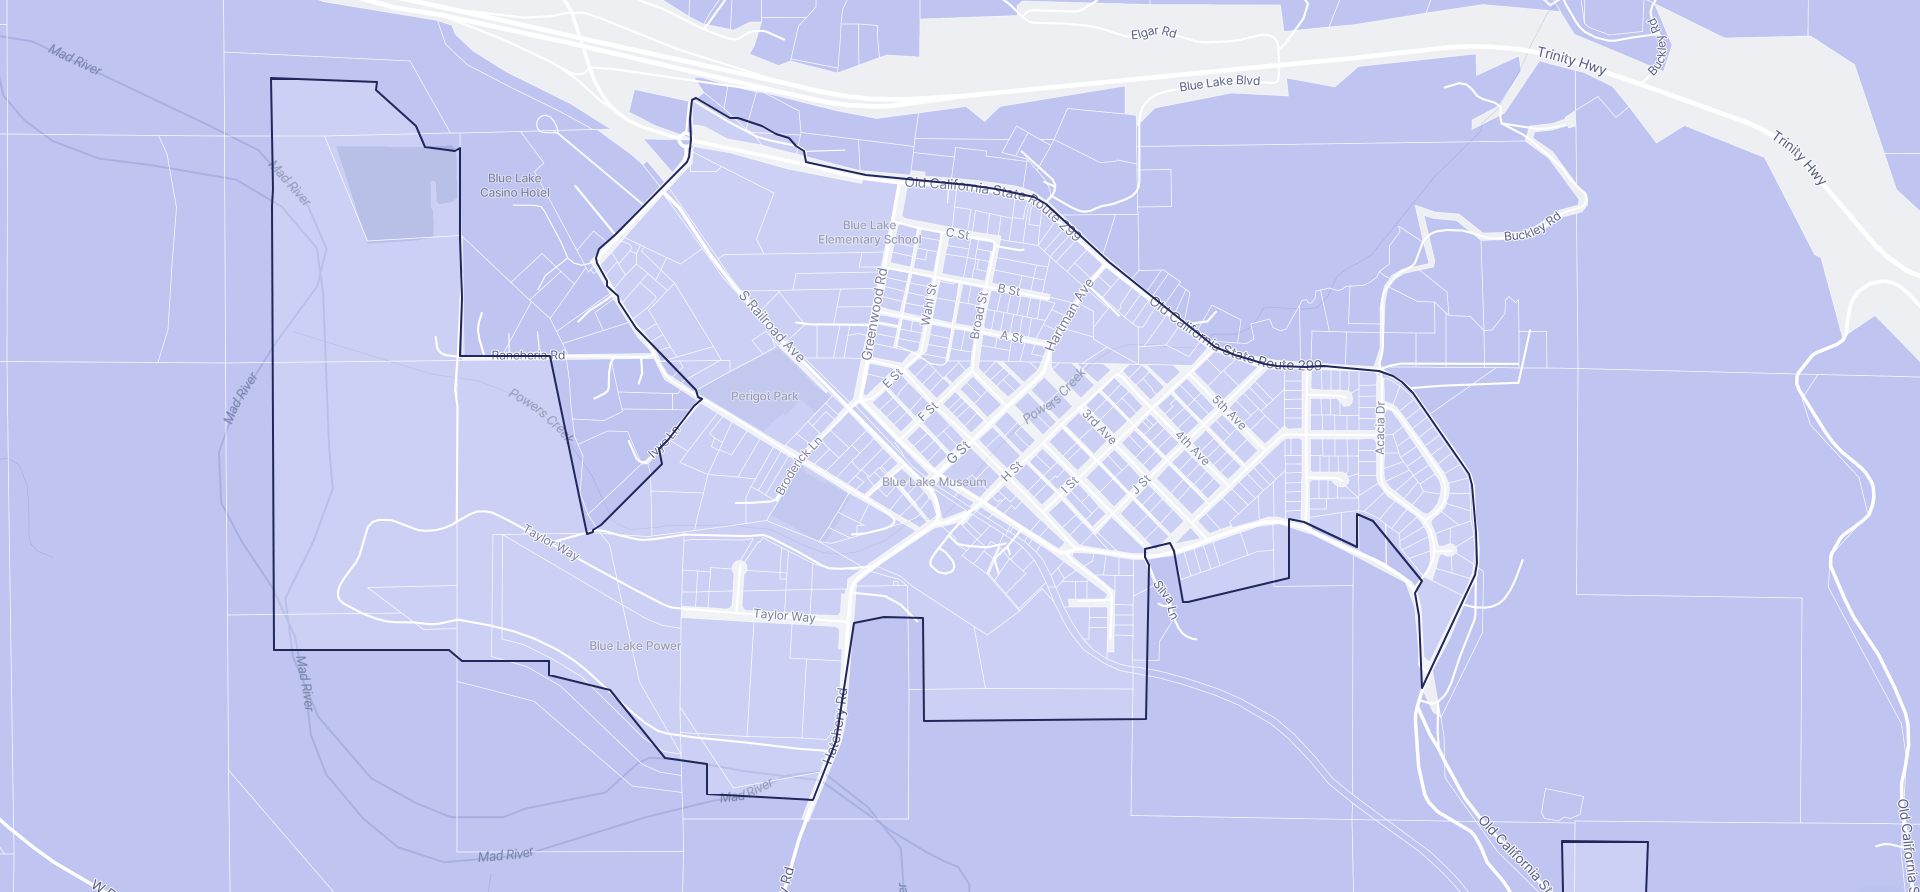 Image of Blue Lake boundaries on a map.